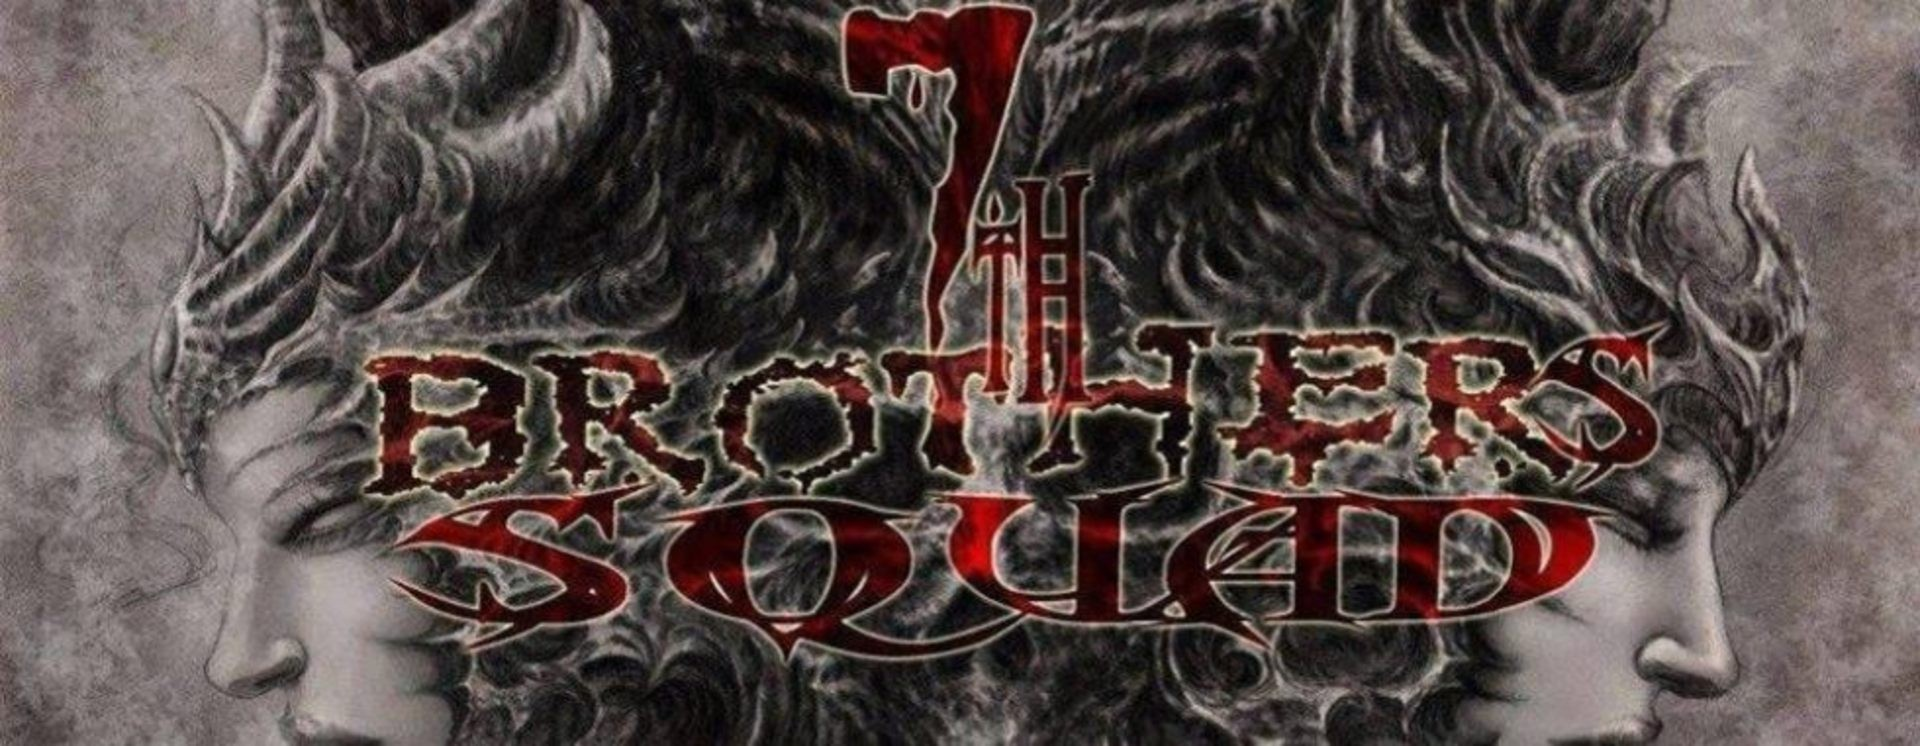 JAMRUD - Surti Tejo by 7th Brotther Squad | ReverbNation